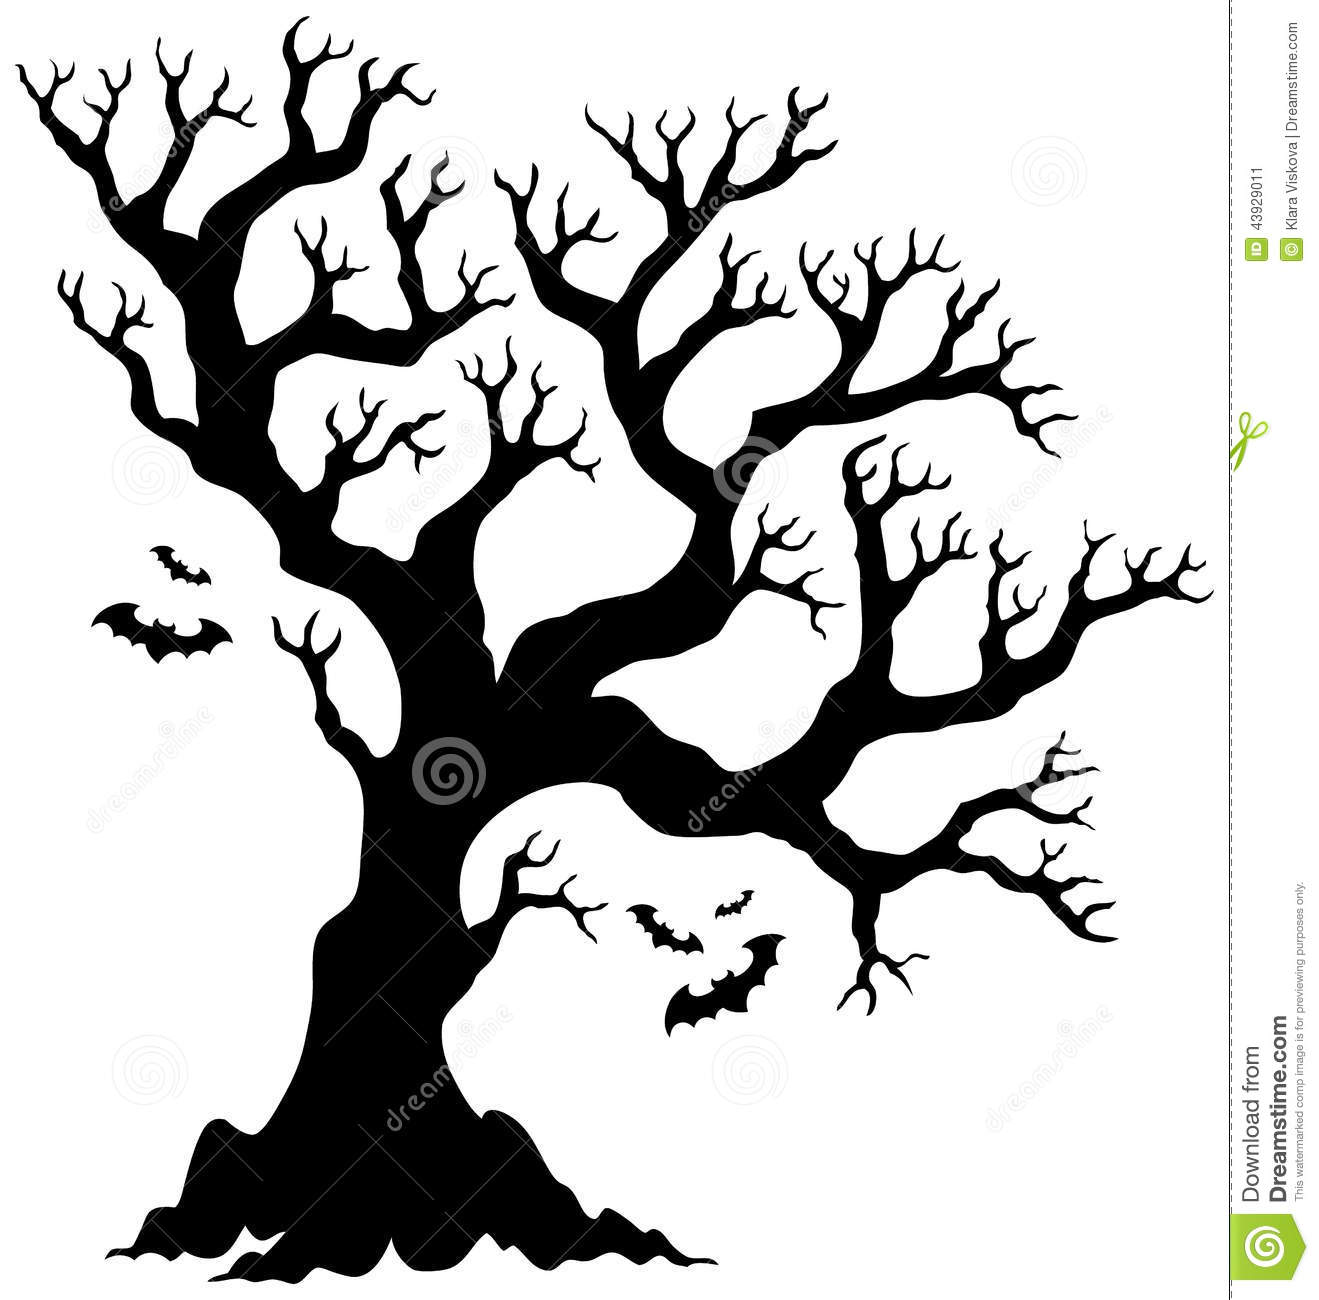 spooky tree silhouette at getdrawings com free for personal use rh getdrawings com Tree Silhouette Halloween Clip Art Borders